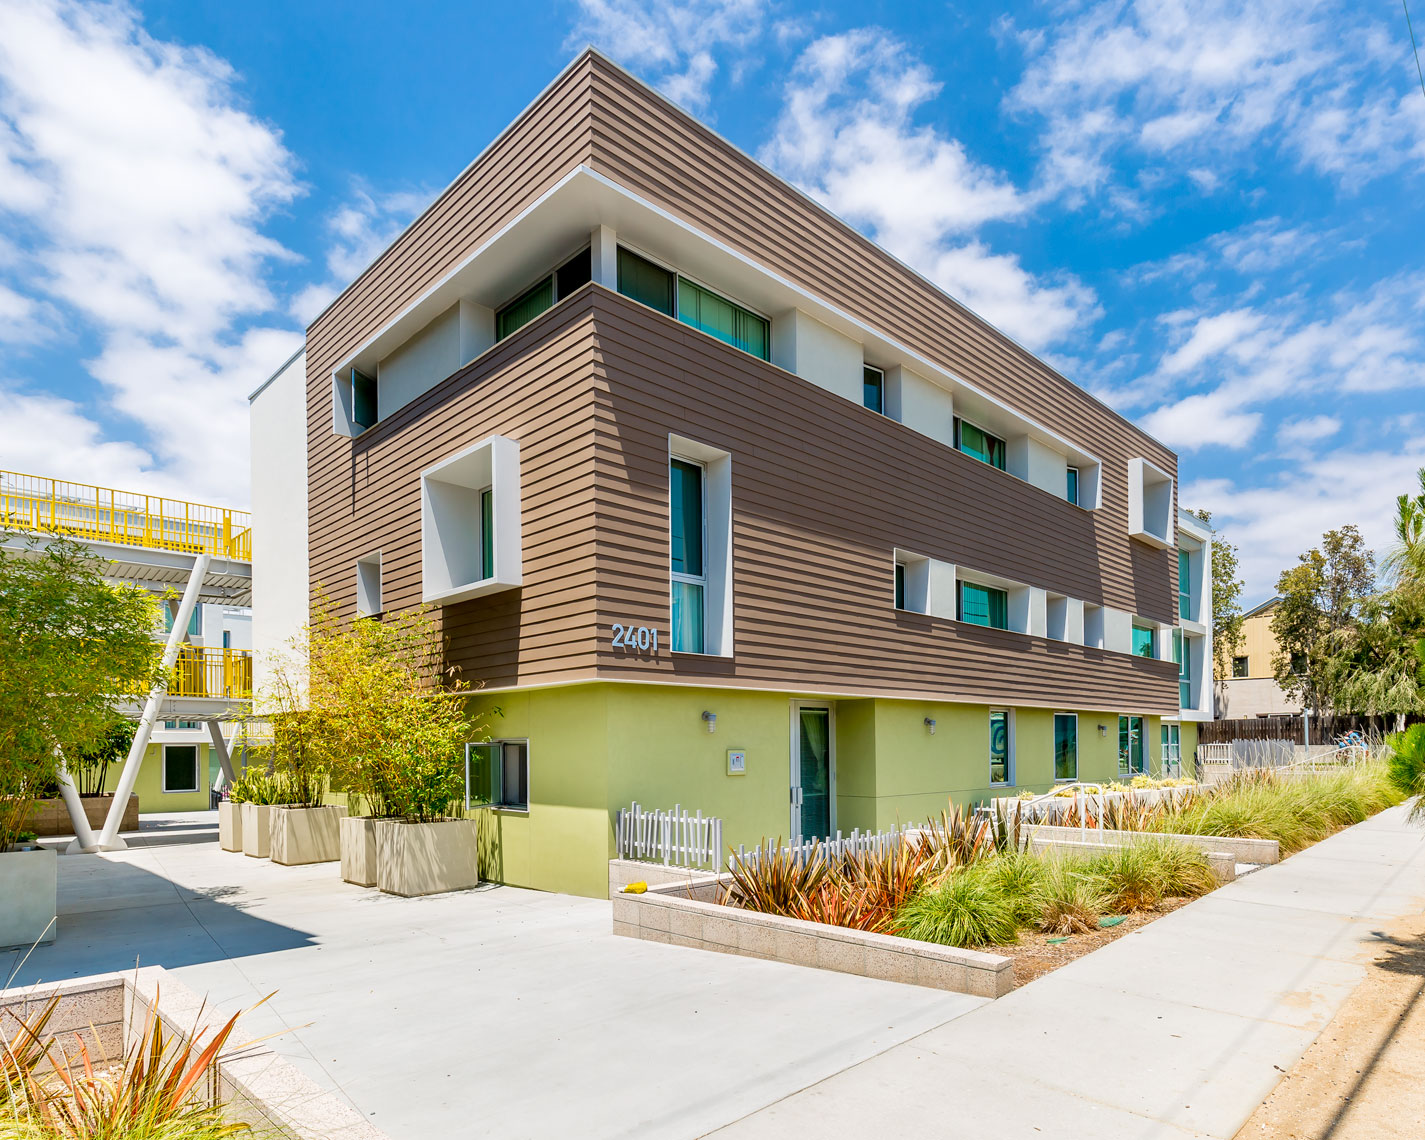 William_Short_Photography_Santa_Monica_Affordable_Housing_001